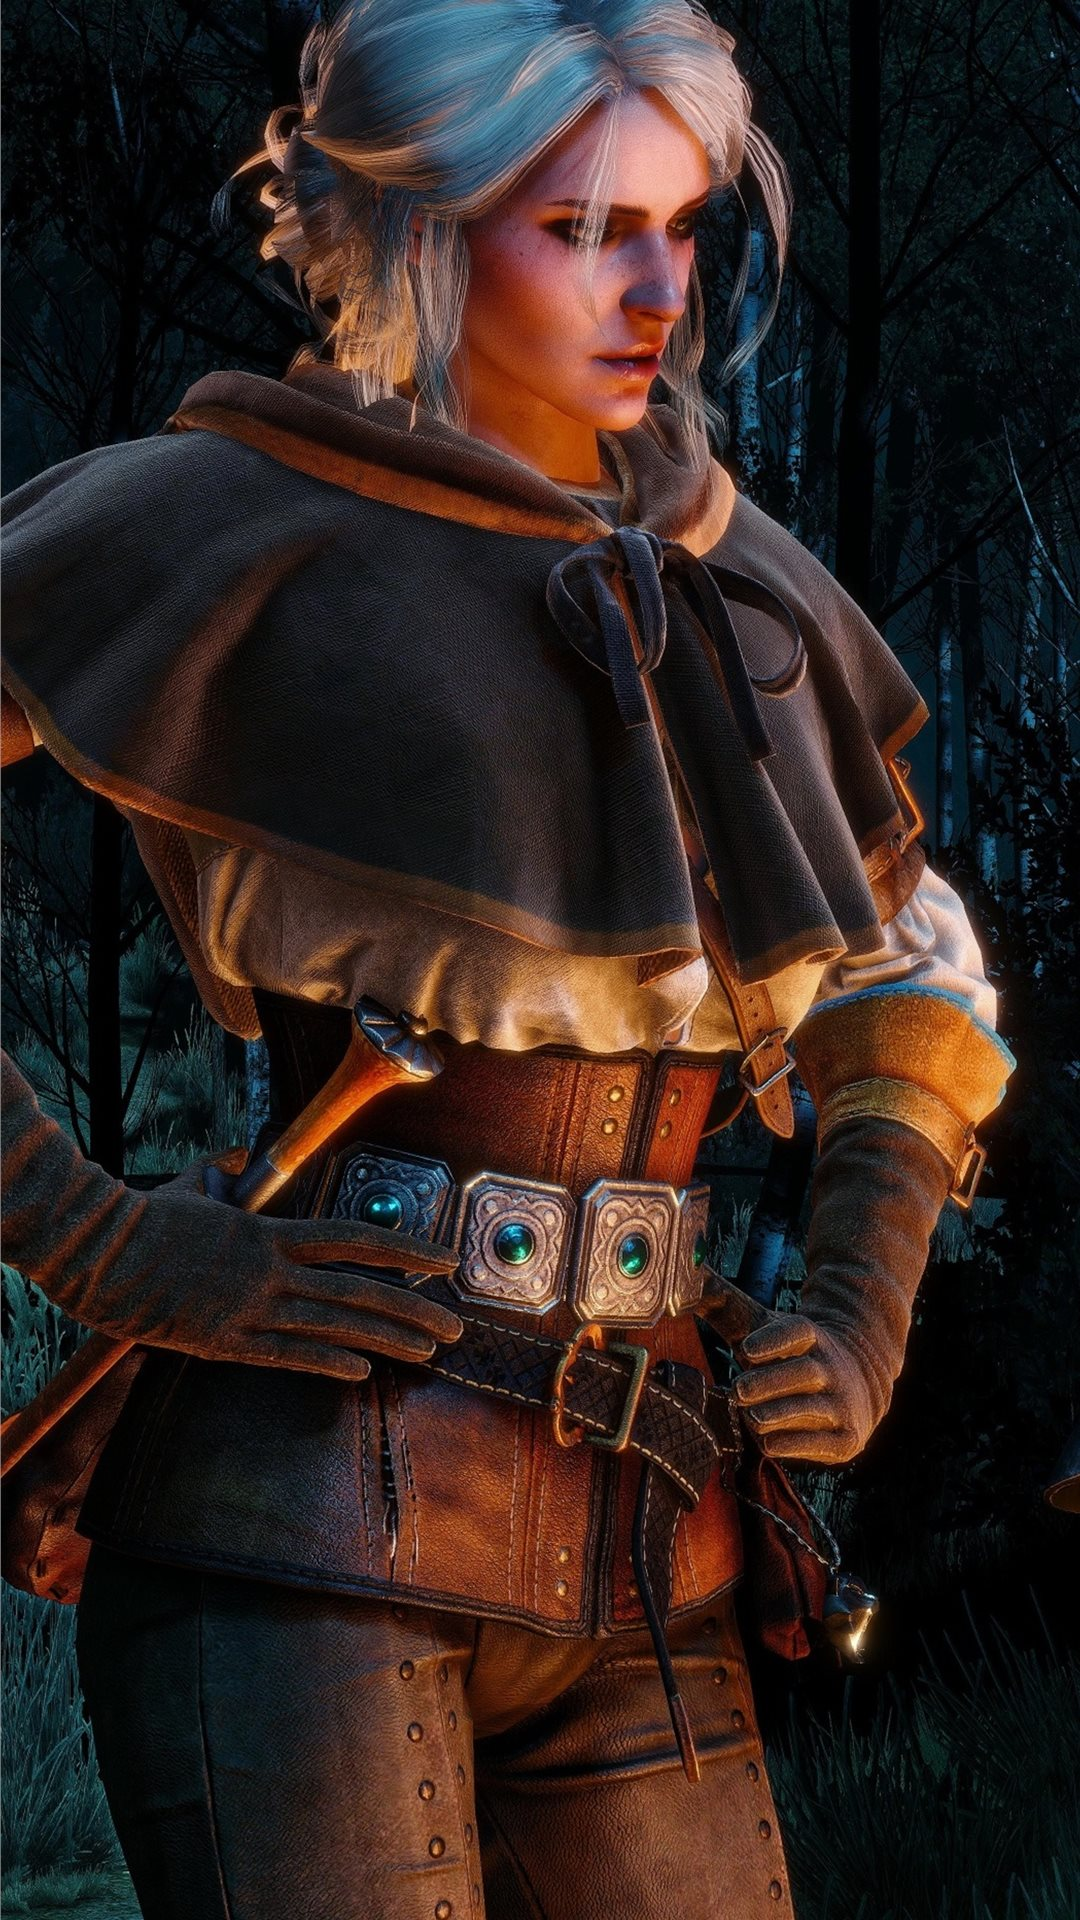 Best The Witcher 3 Iphone 8 Wallpapers Hd 2020 Ilikewallpaper